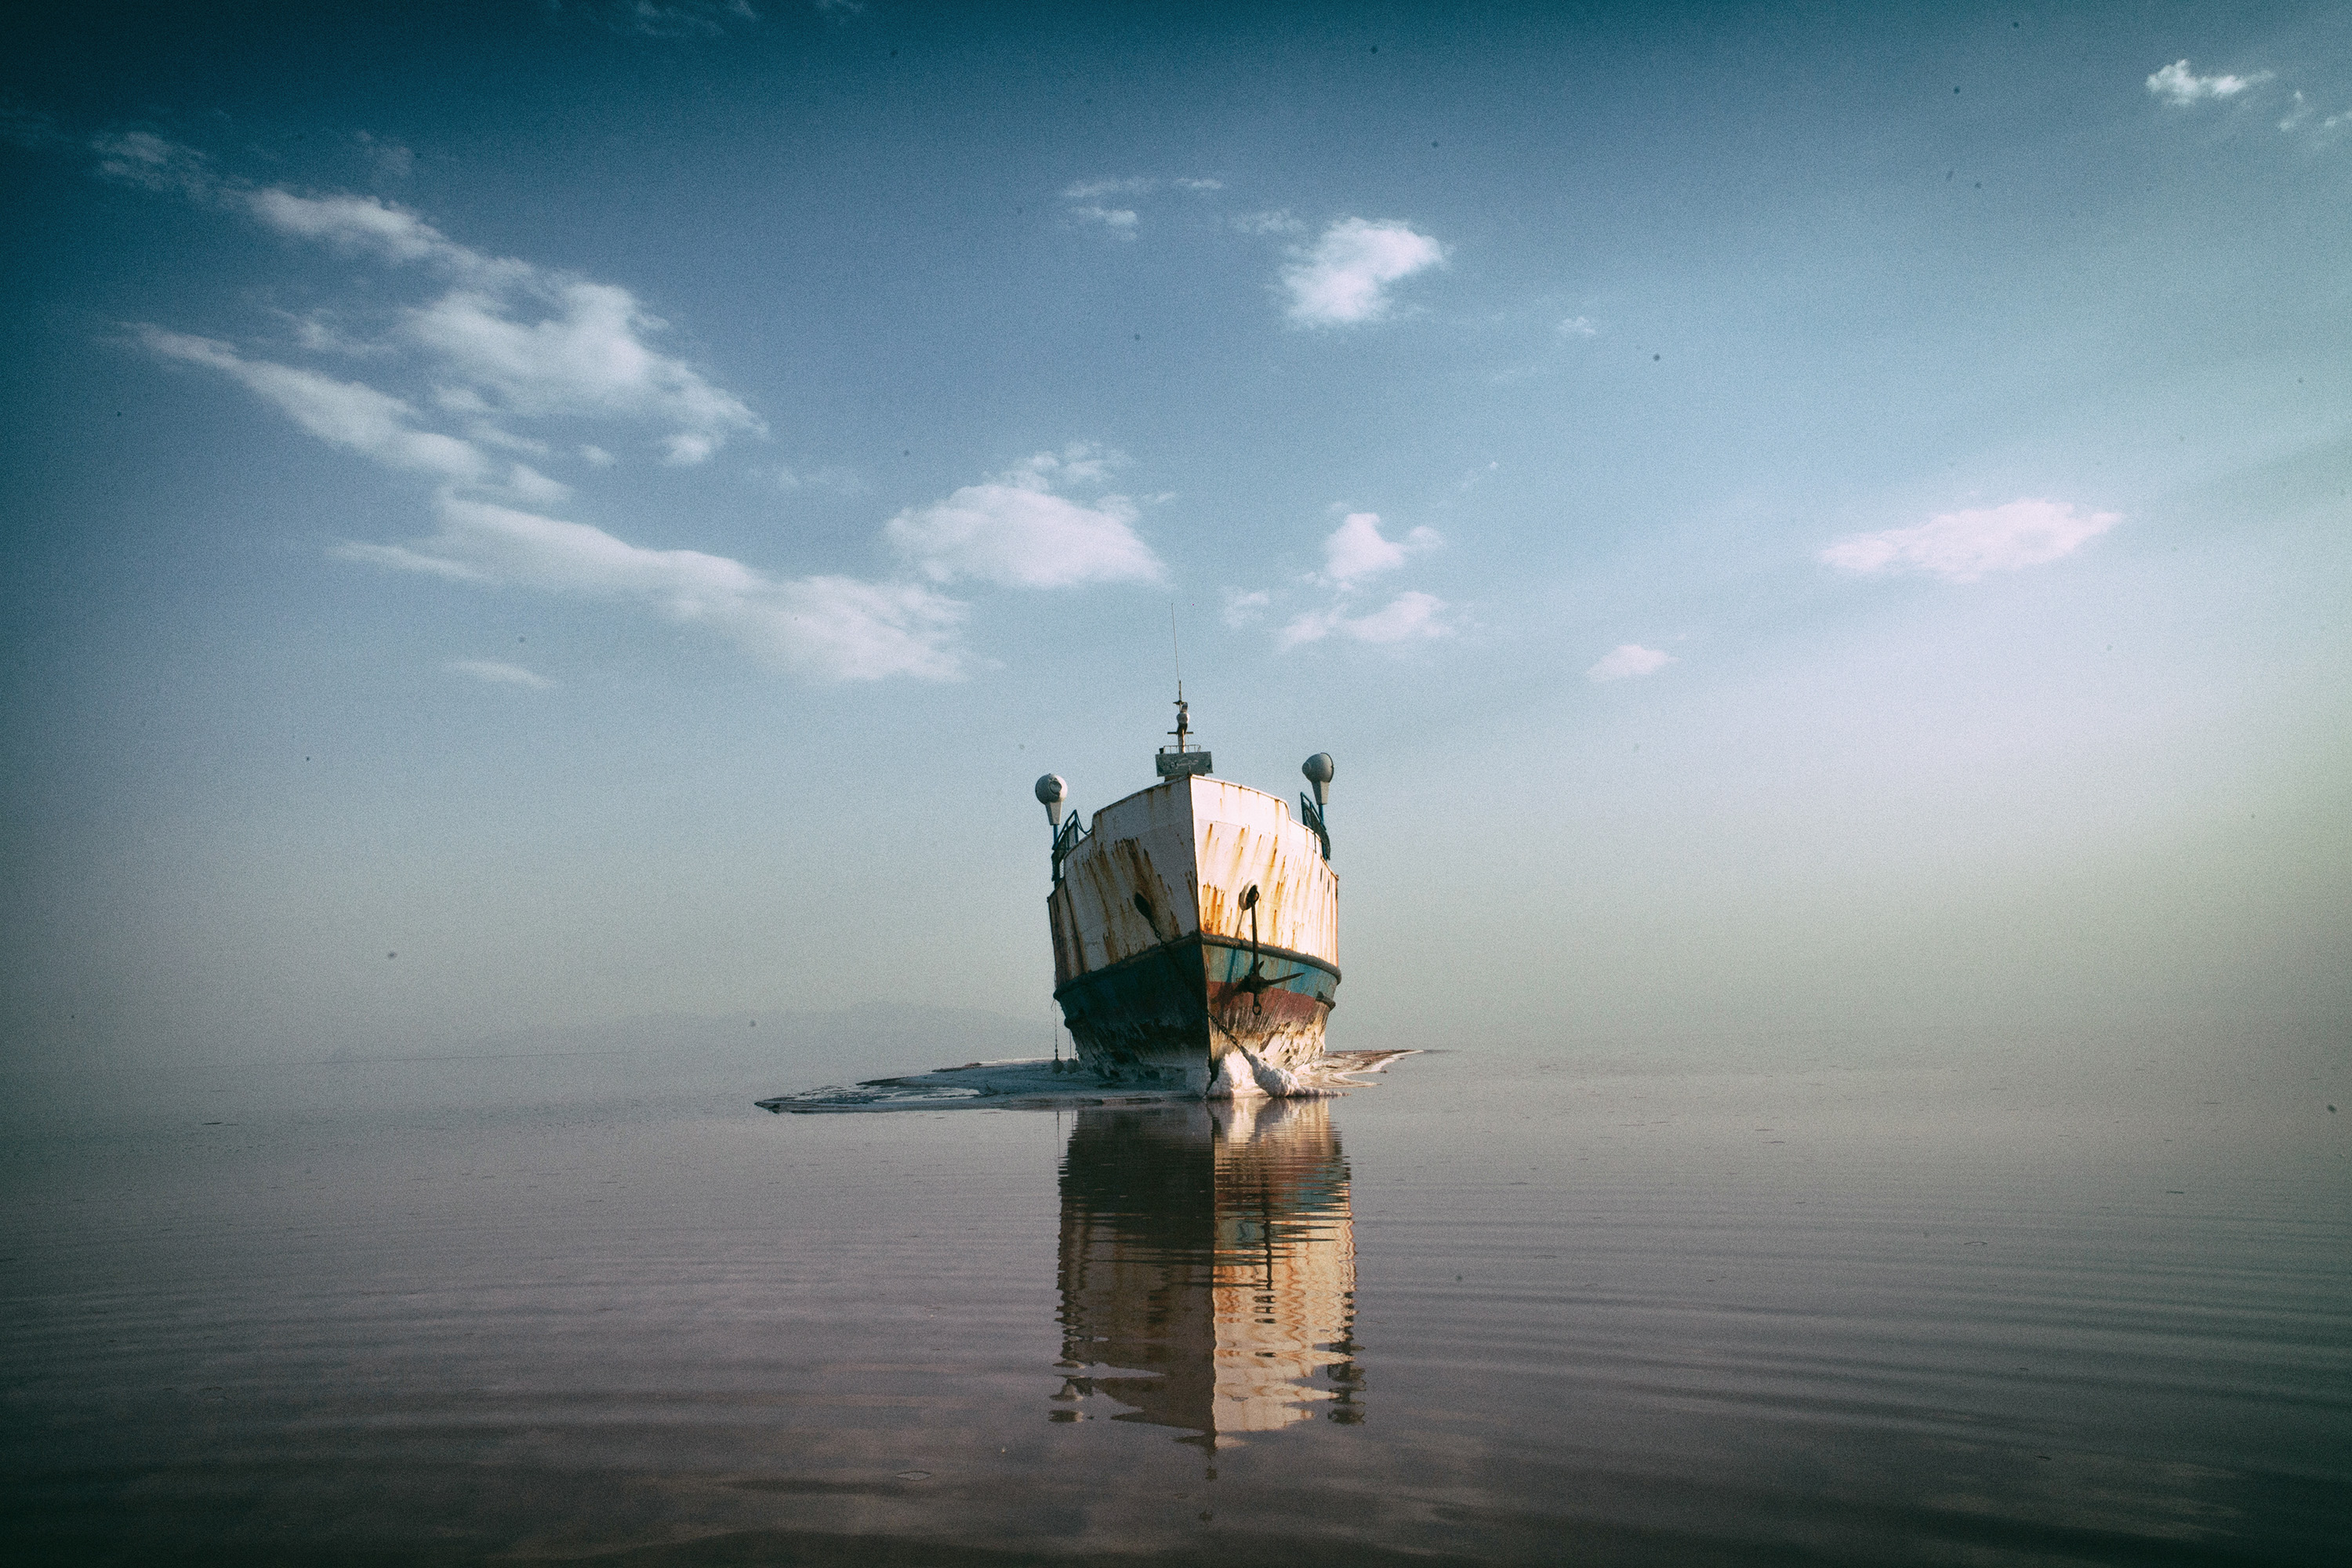 'Noah's Ark', the biggest passenger ship on Lake Urmia, which ran aground in the middle of the lake. 2013.